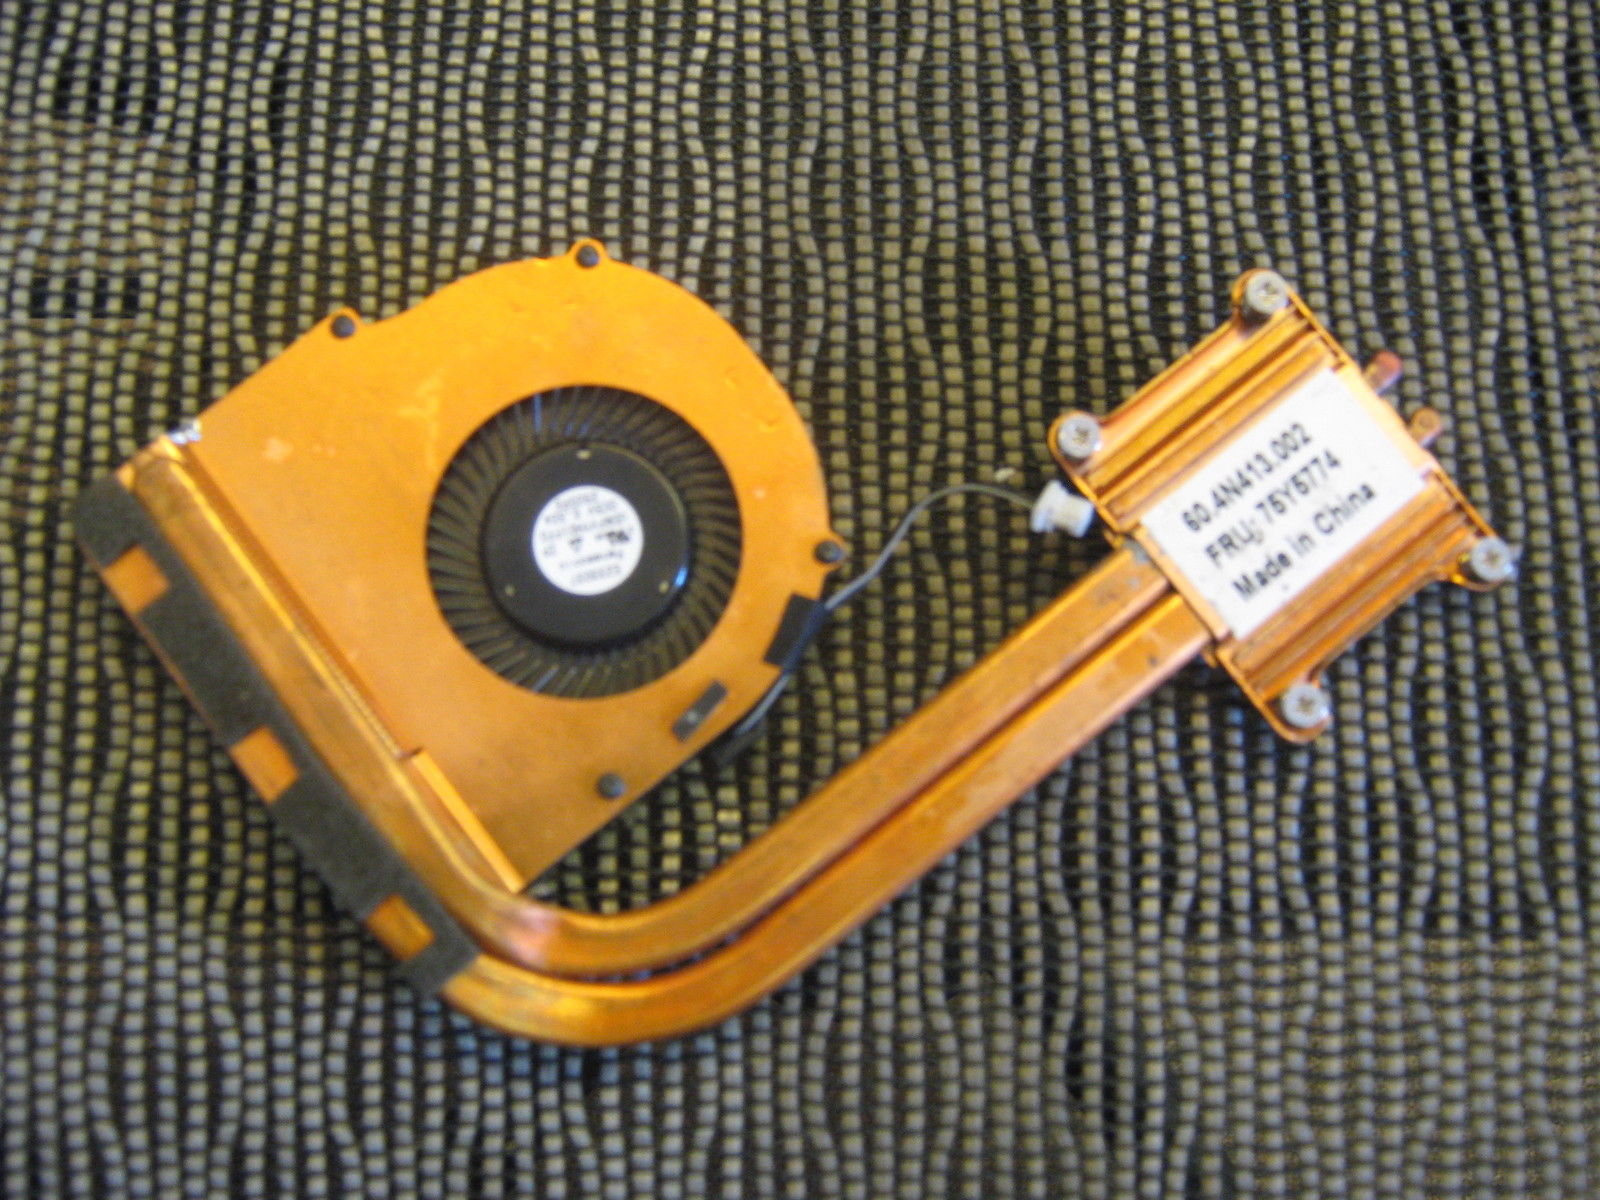 High quality IBM LENOVO UltraBook X1 Fan Heatsink 60.4N413.002 75Y5774